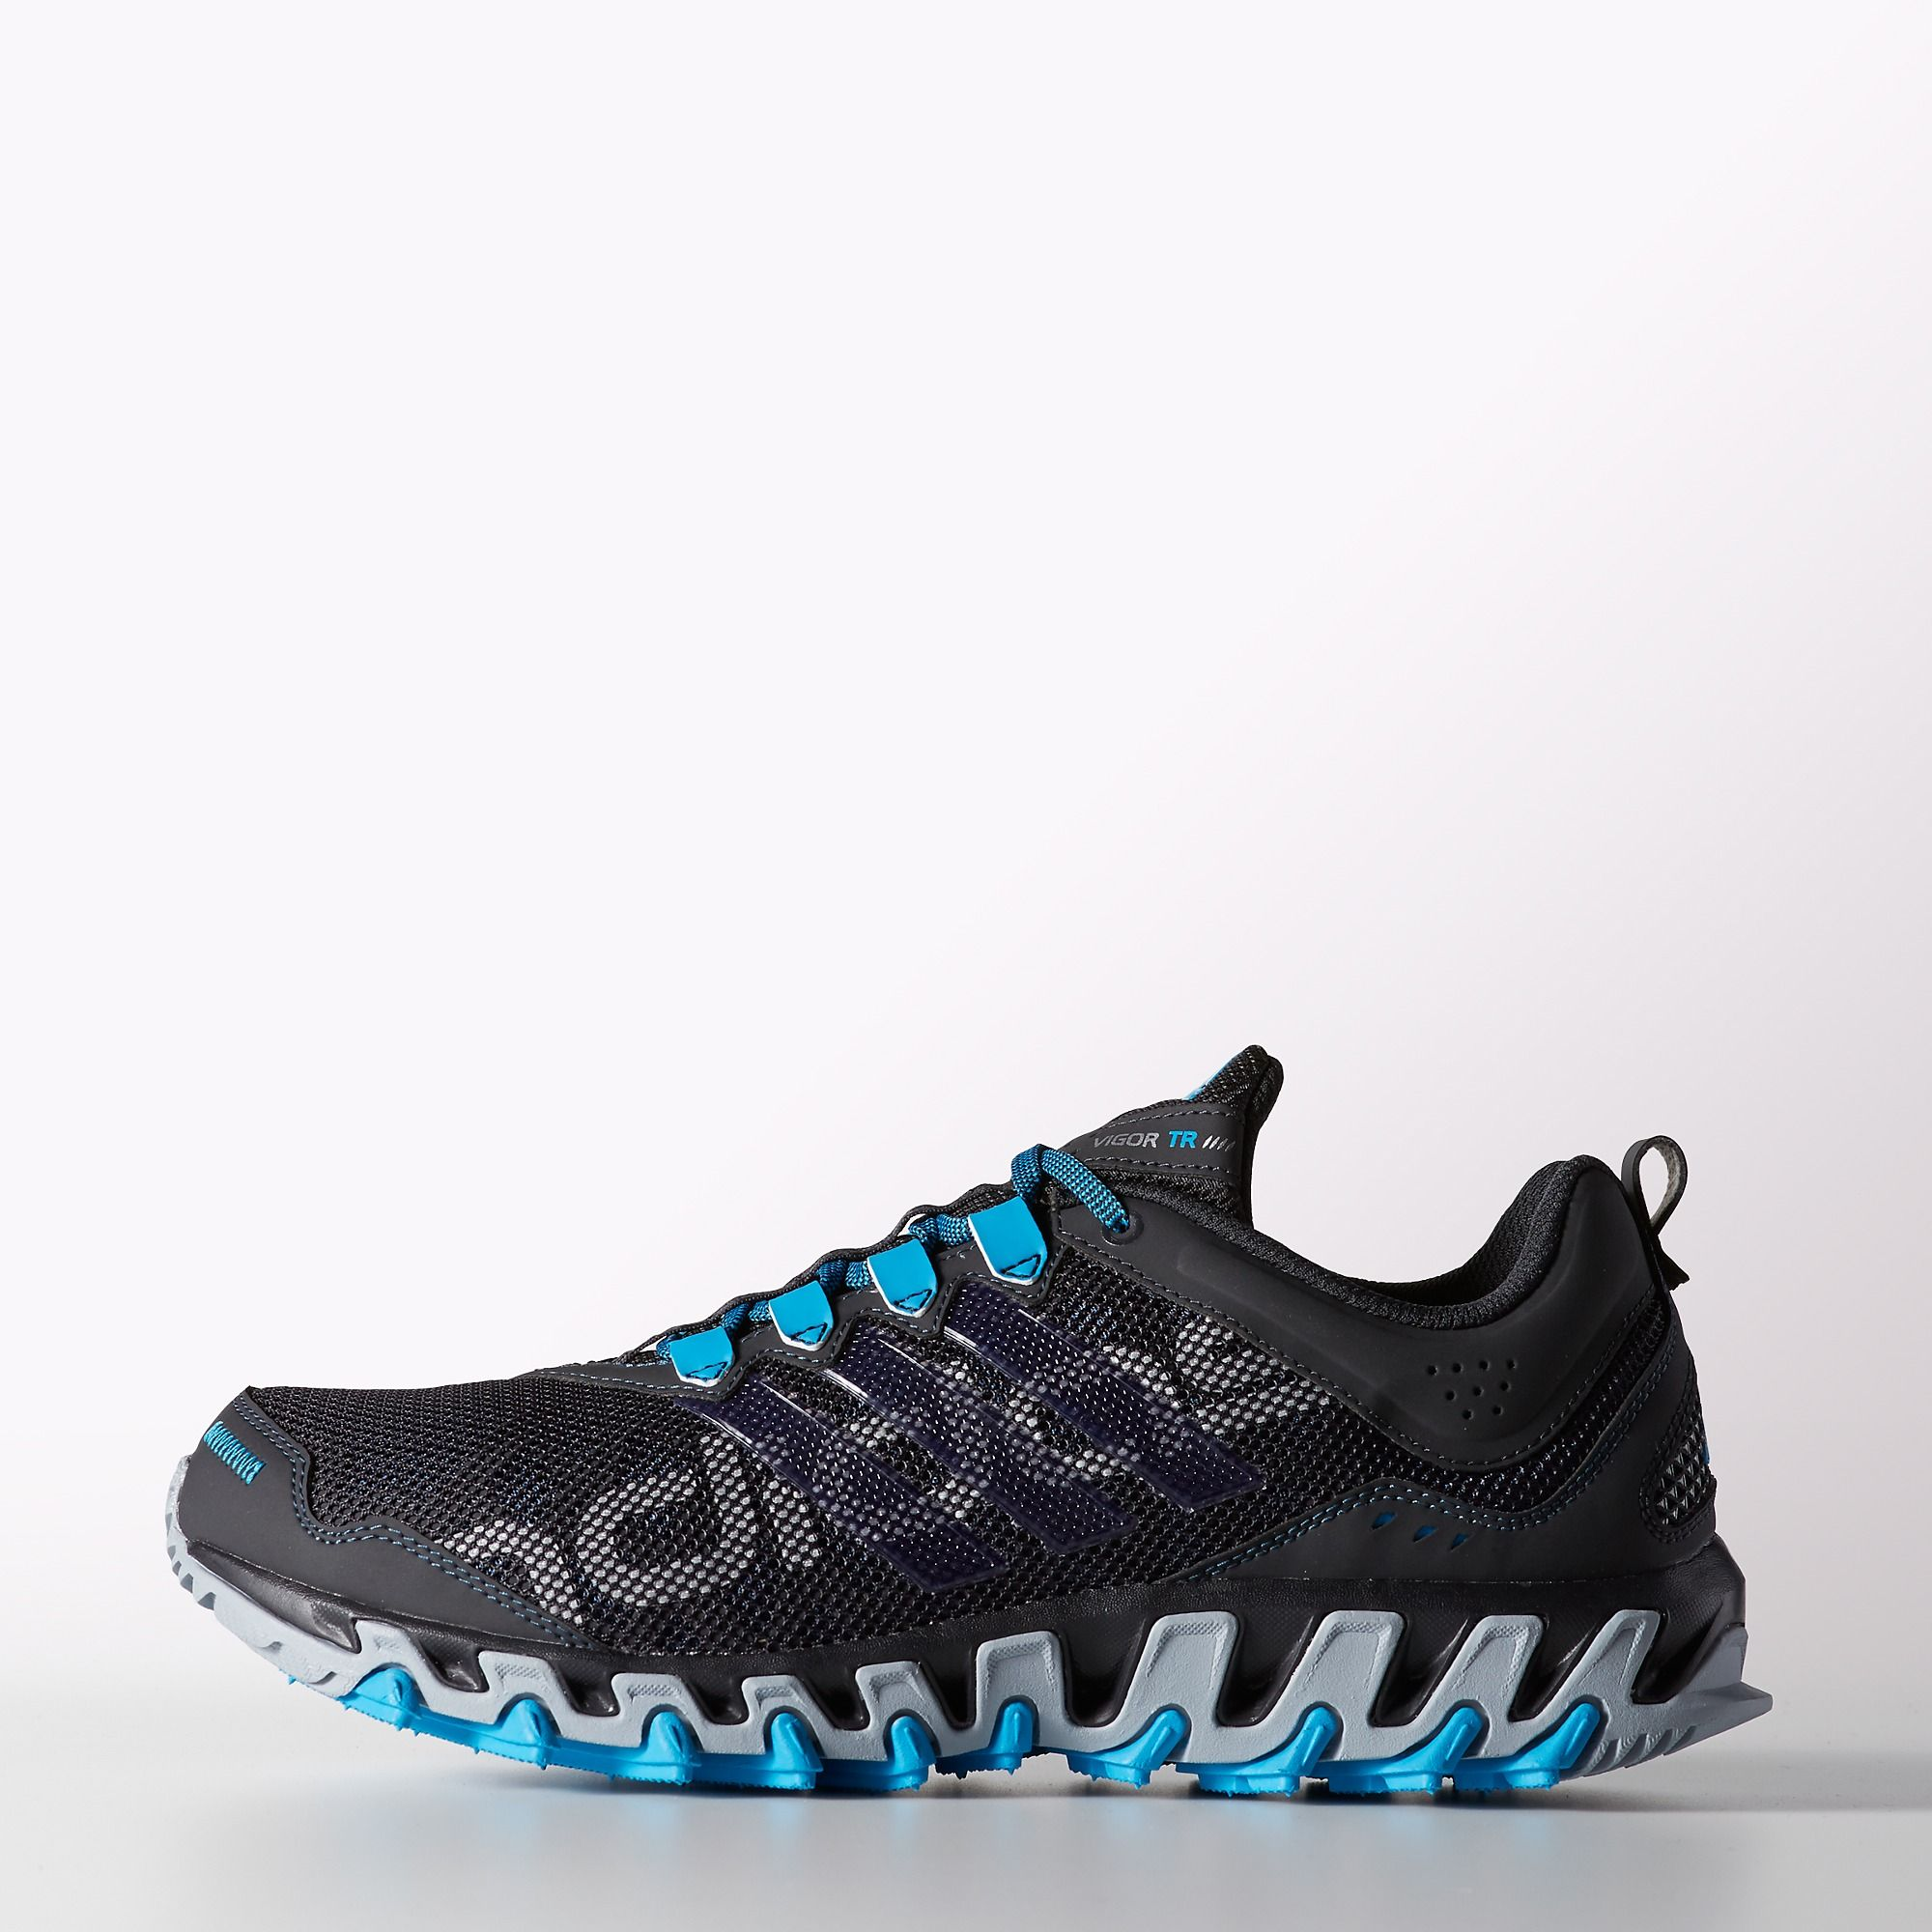 adidas Vigor 4 Trail Shoes $82.00 | Running shoes for men